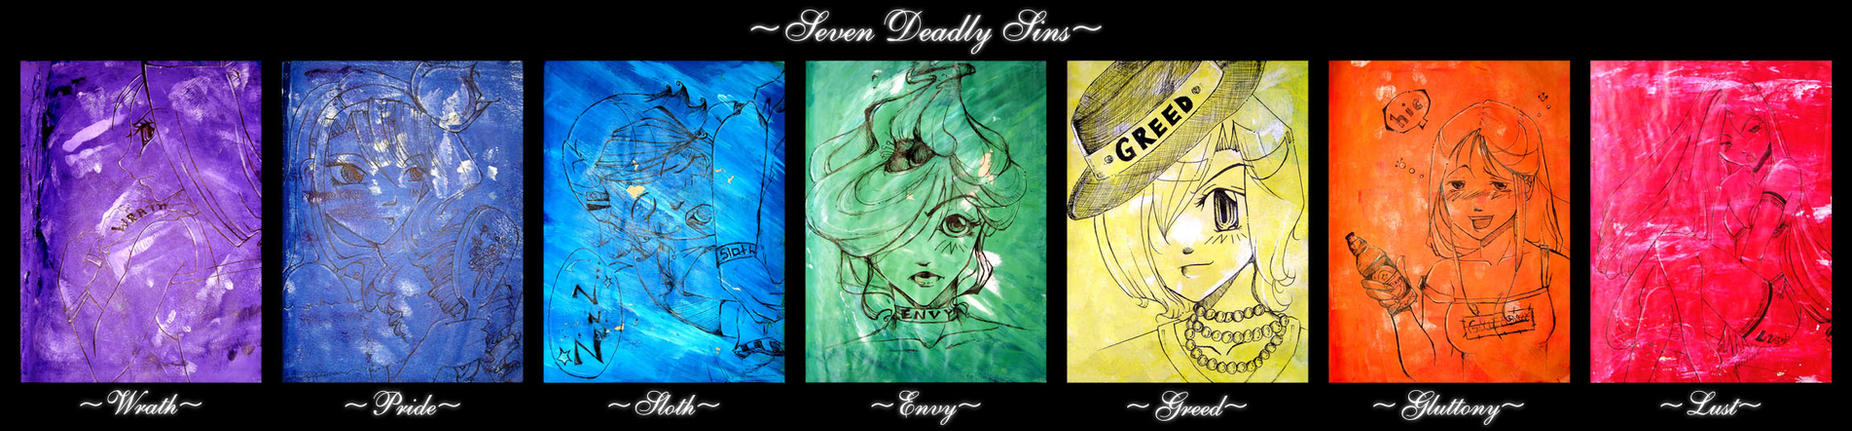 7 Deadly Sins by kristina1234u